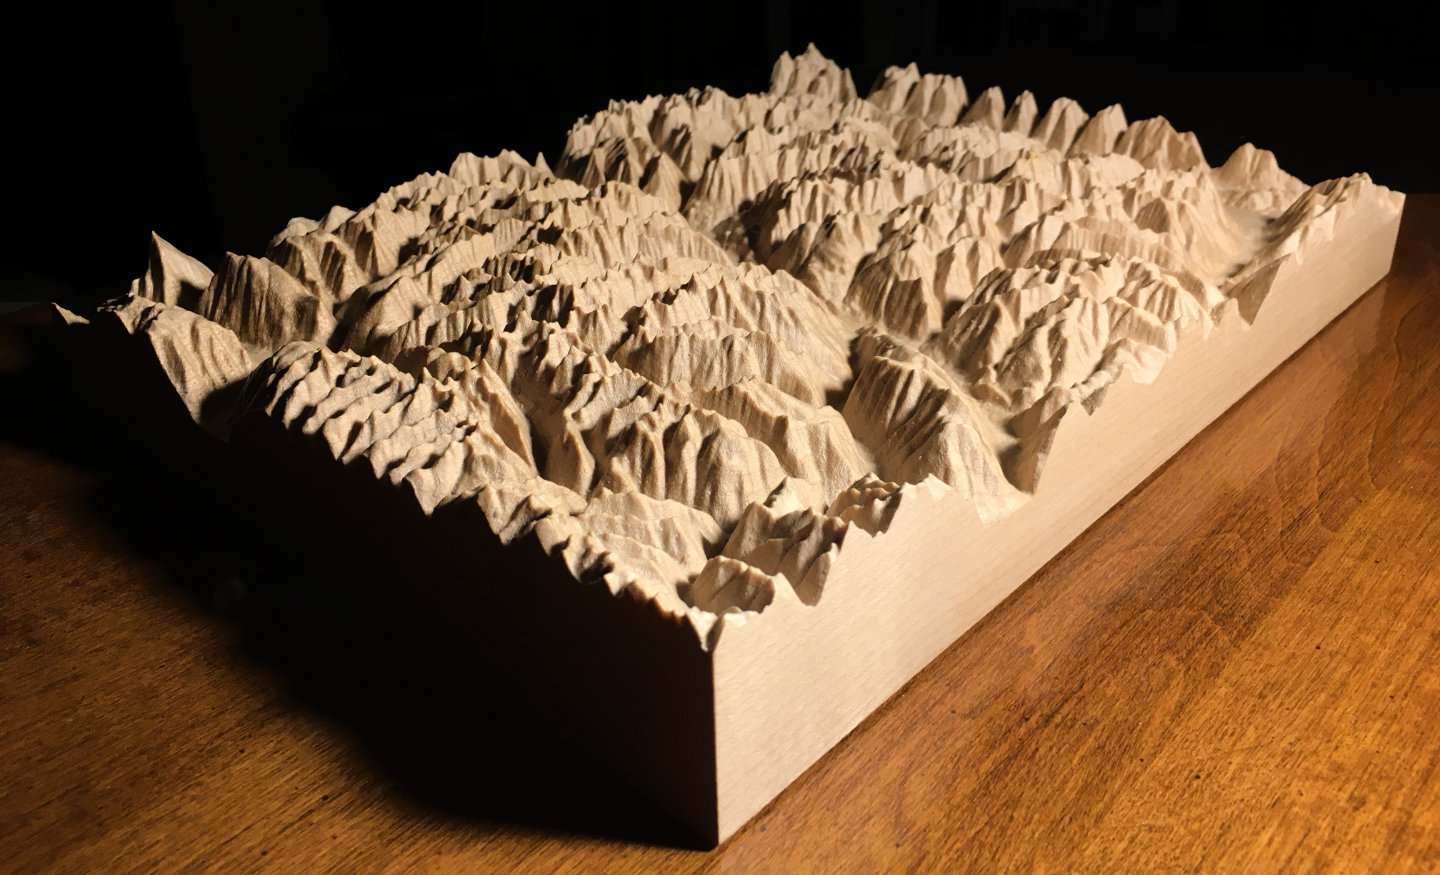 three-dimensional wood-carved relief map of the mountains of Valhalla & Kokanee Glacier, British Columbia, Canada